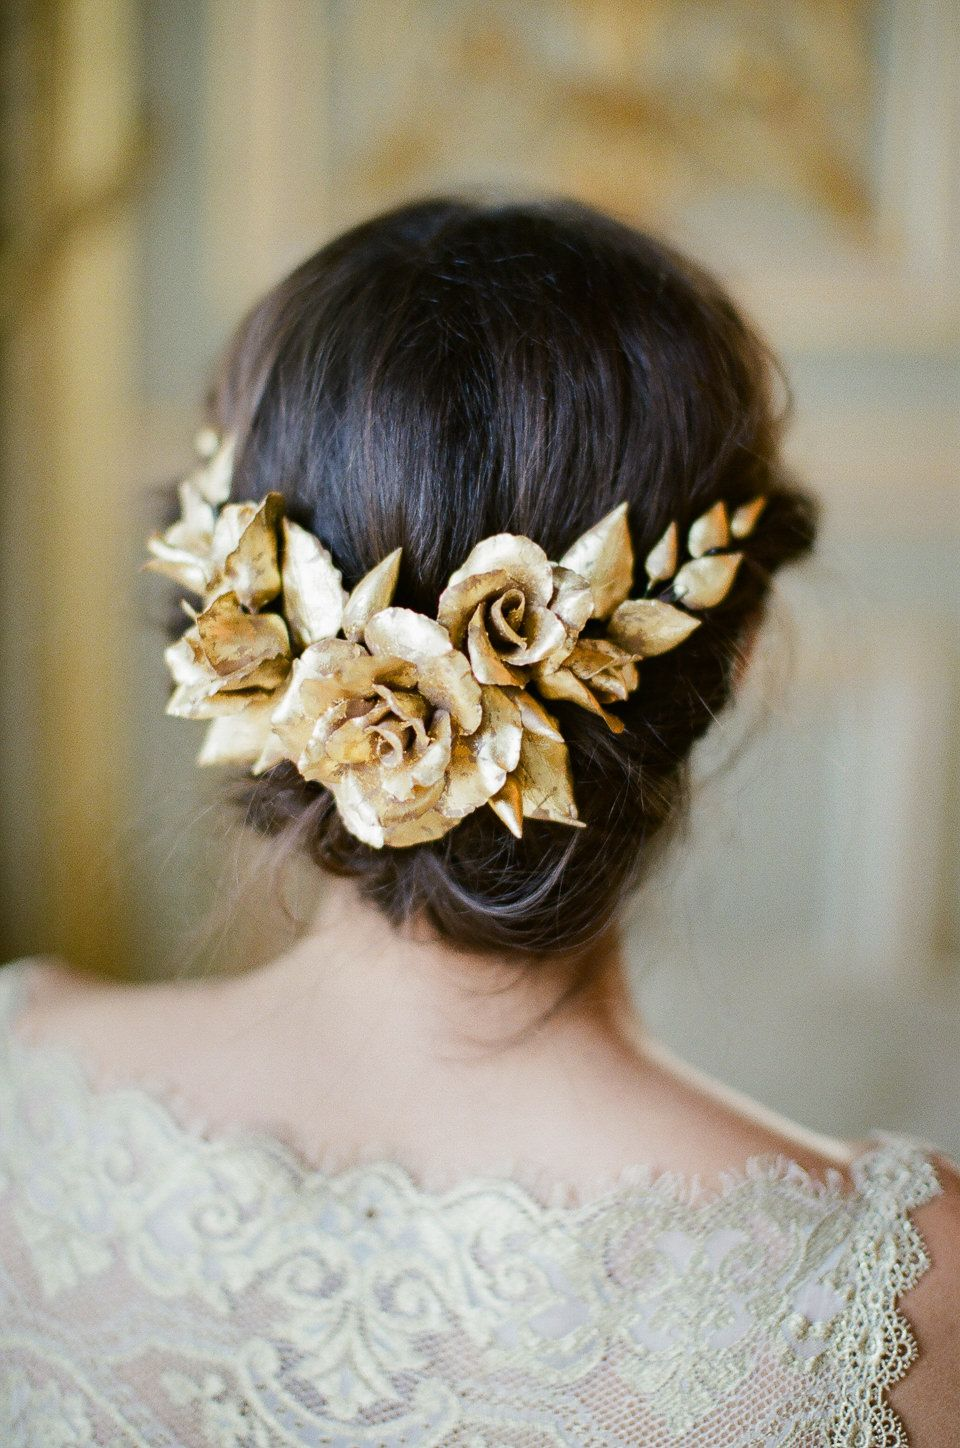 gold hair accessory beautiful heirloom accessories from lila handcrafted bespoke bridal accessories image